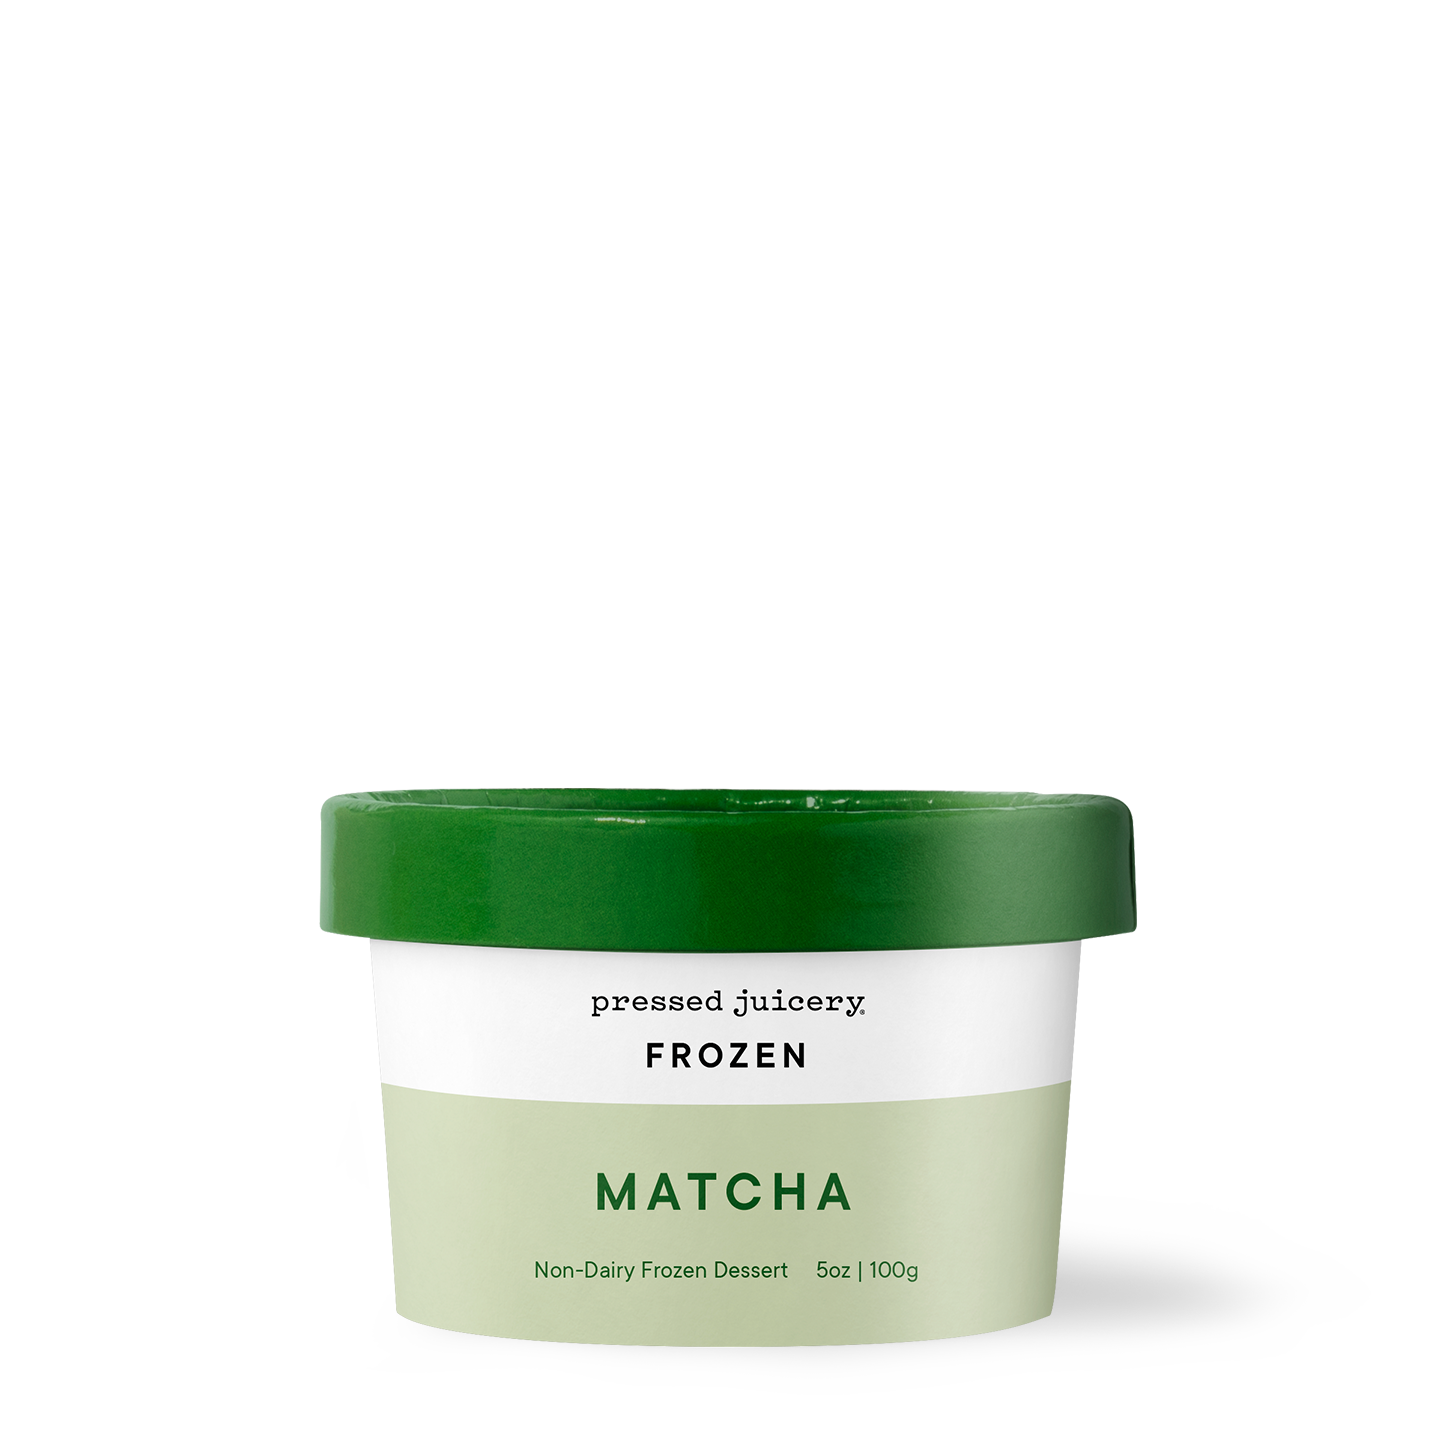 Matcha Frozen Mini product image